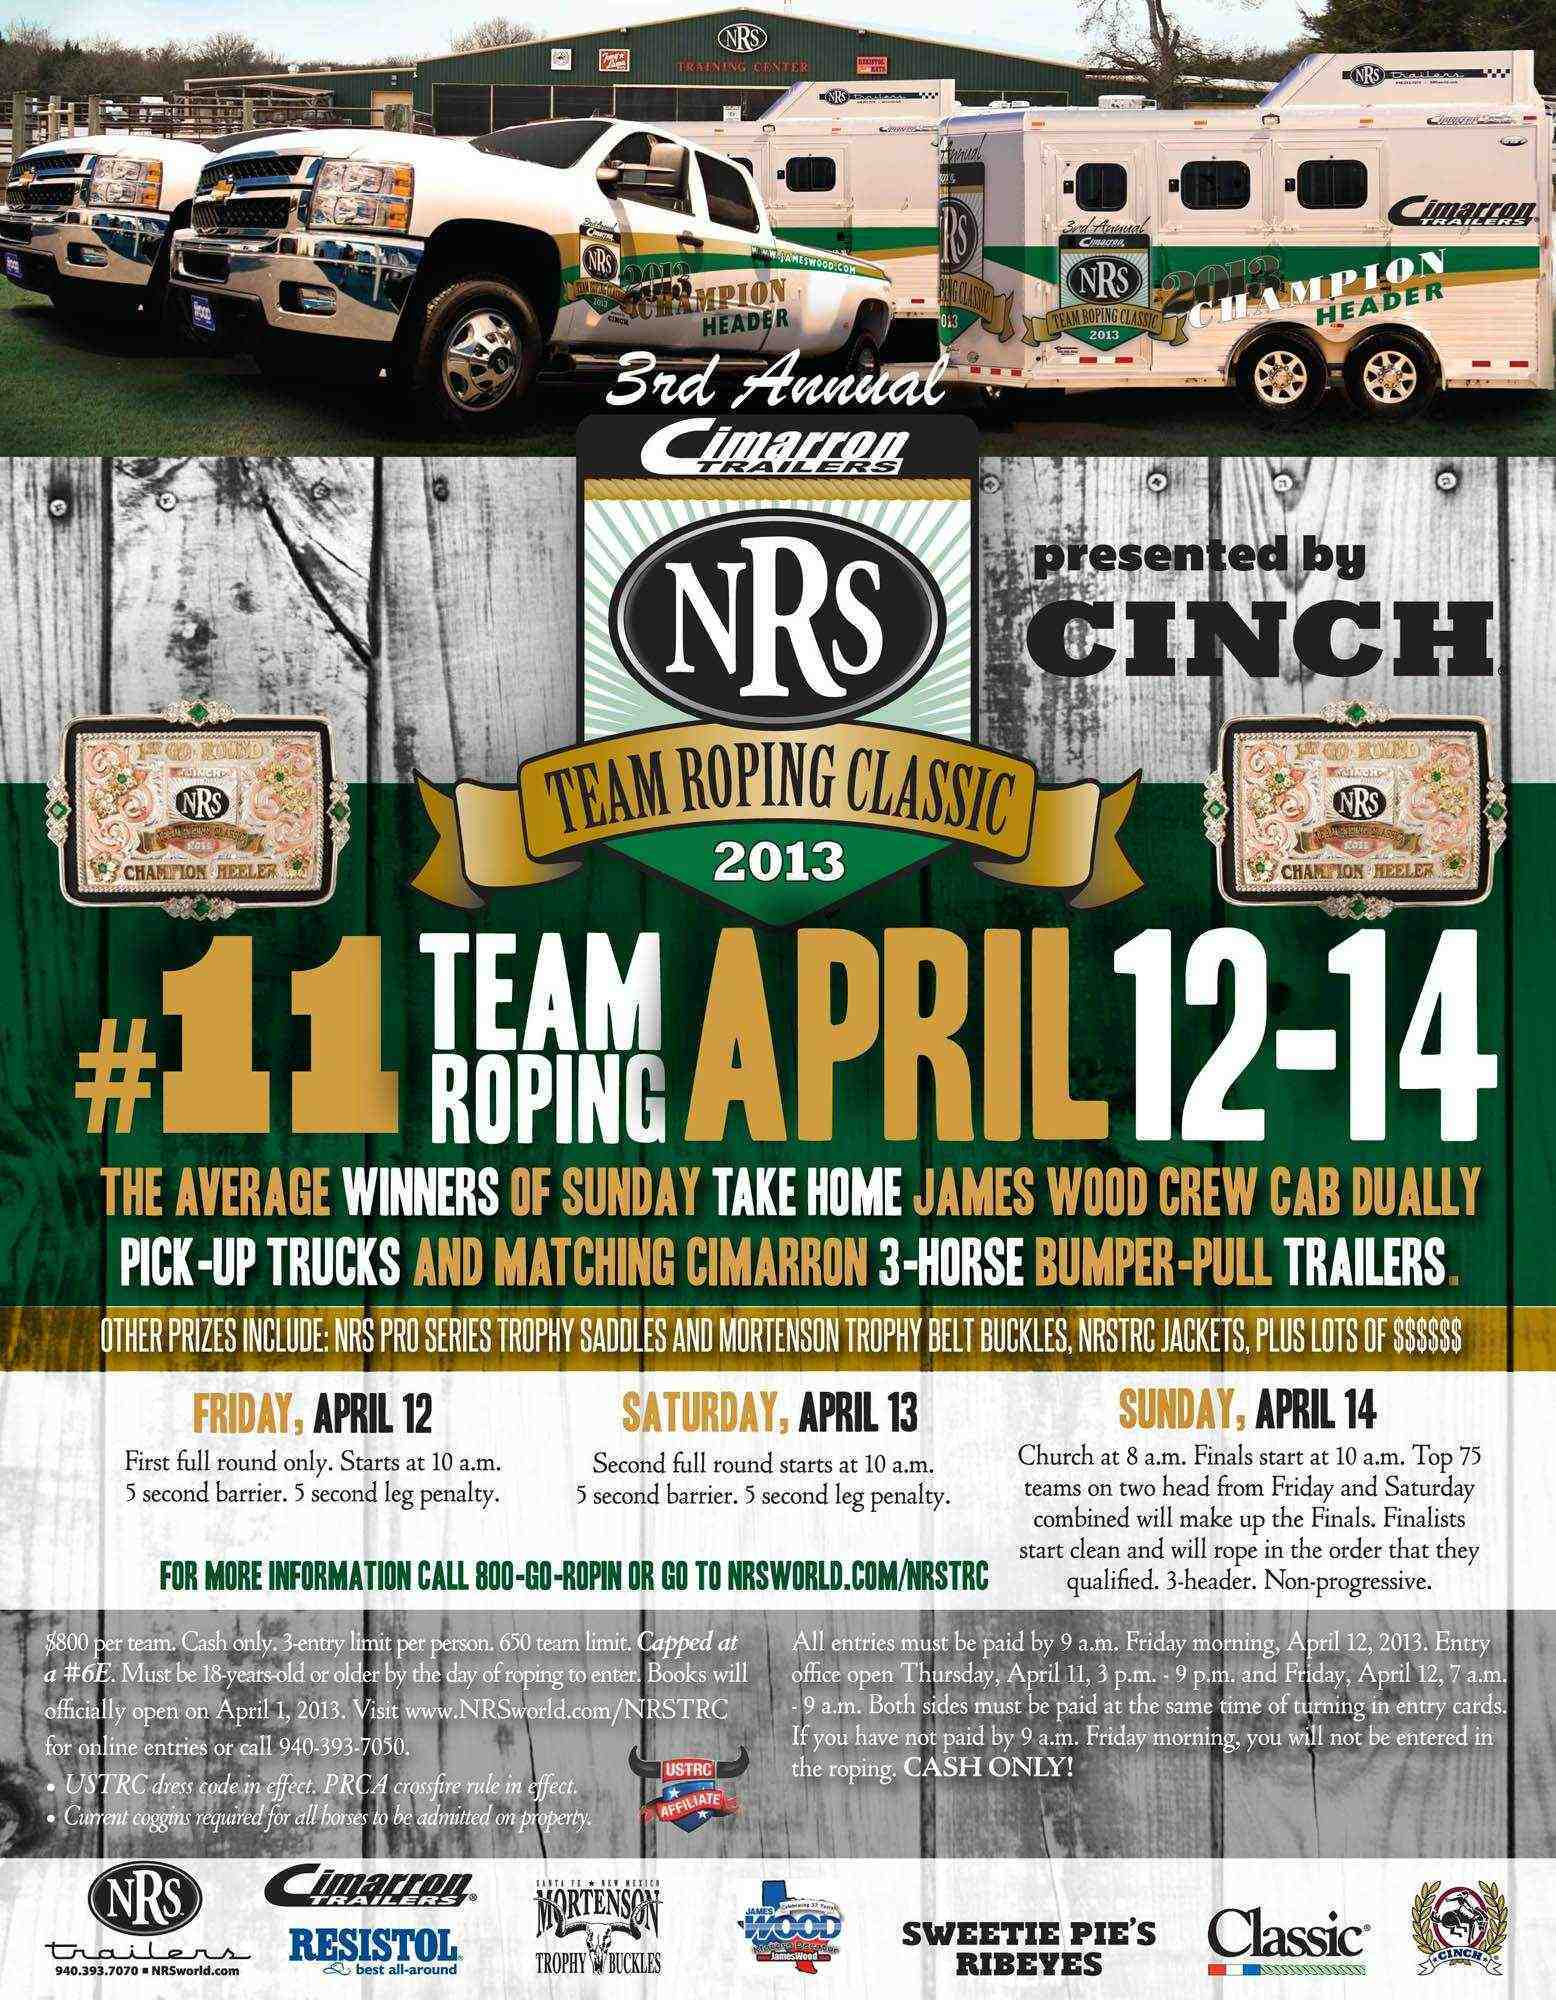 3rd Annual NRS Team Roping Classic